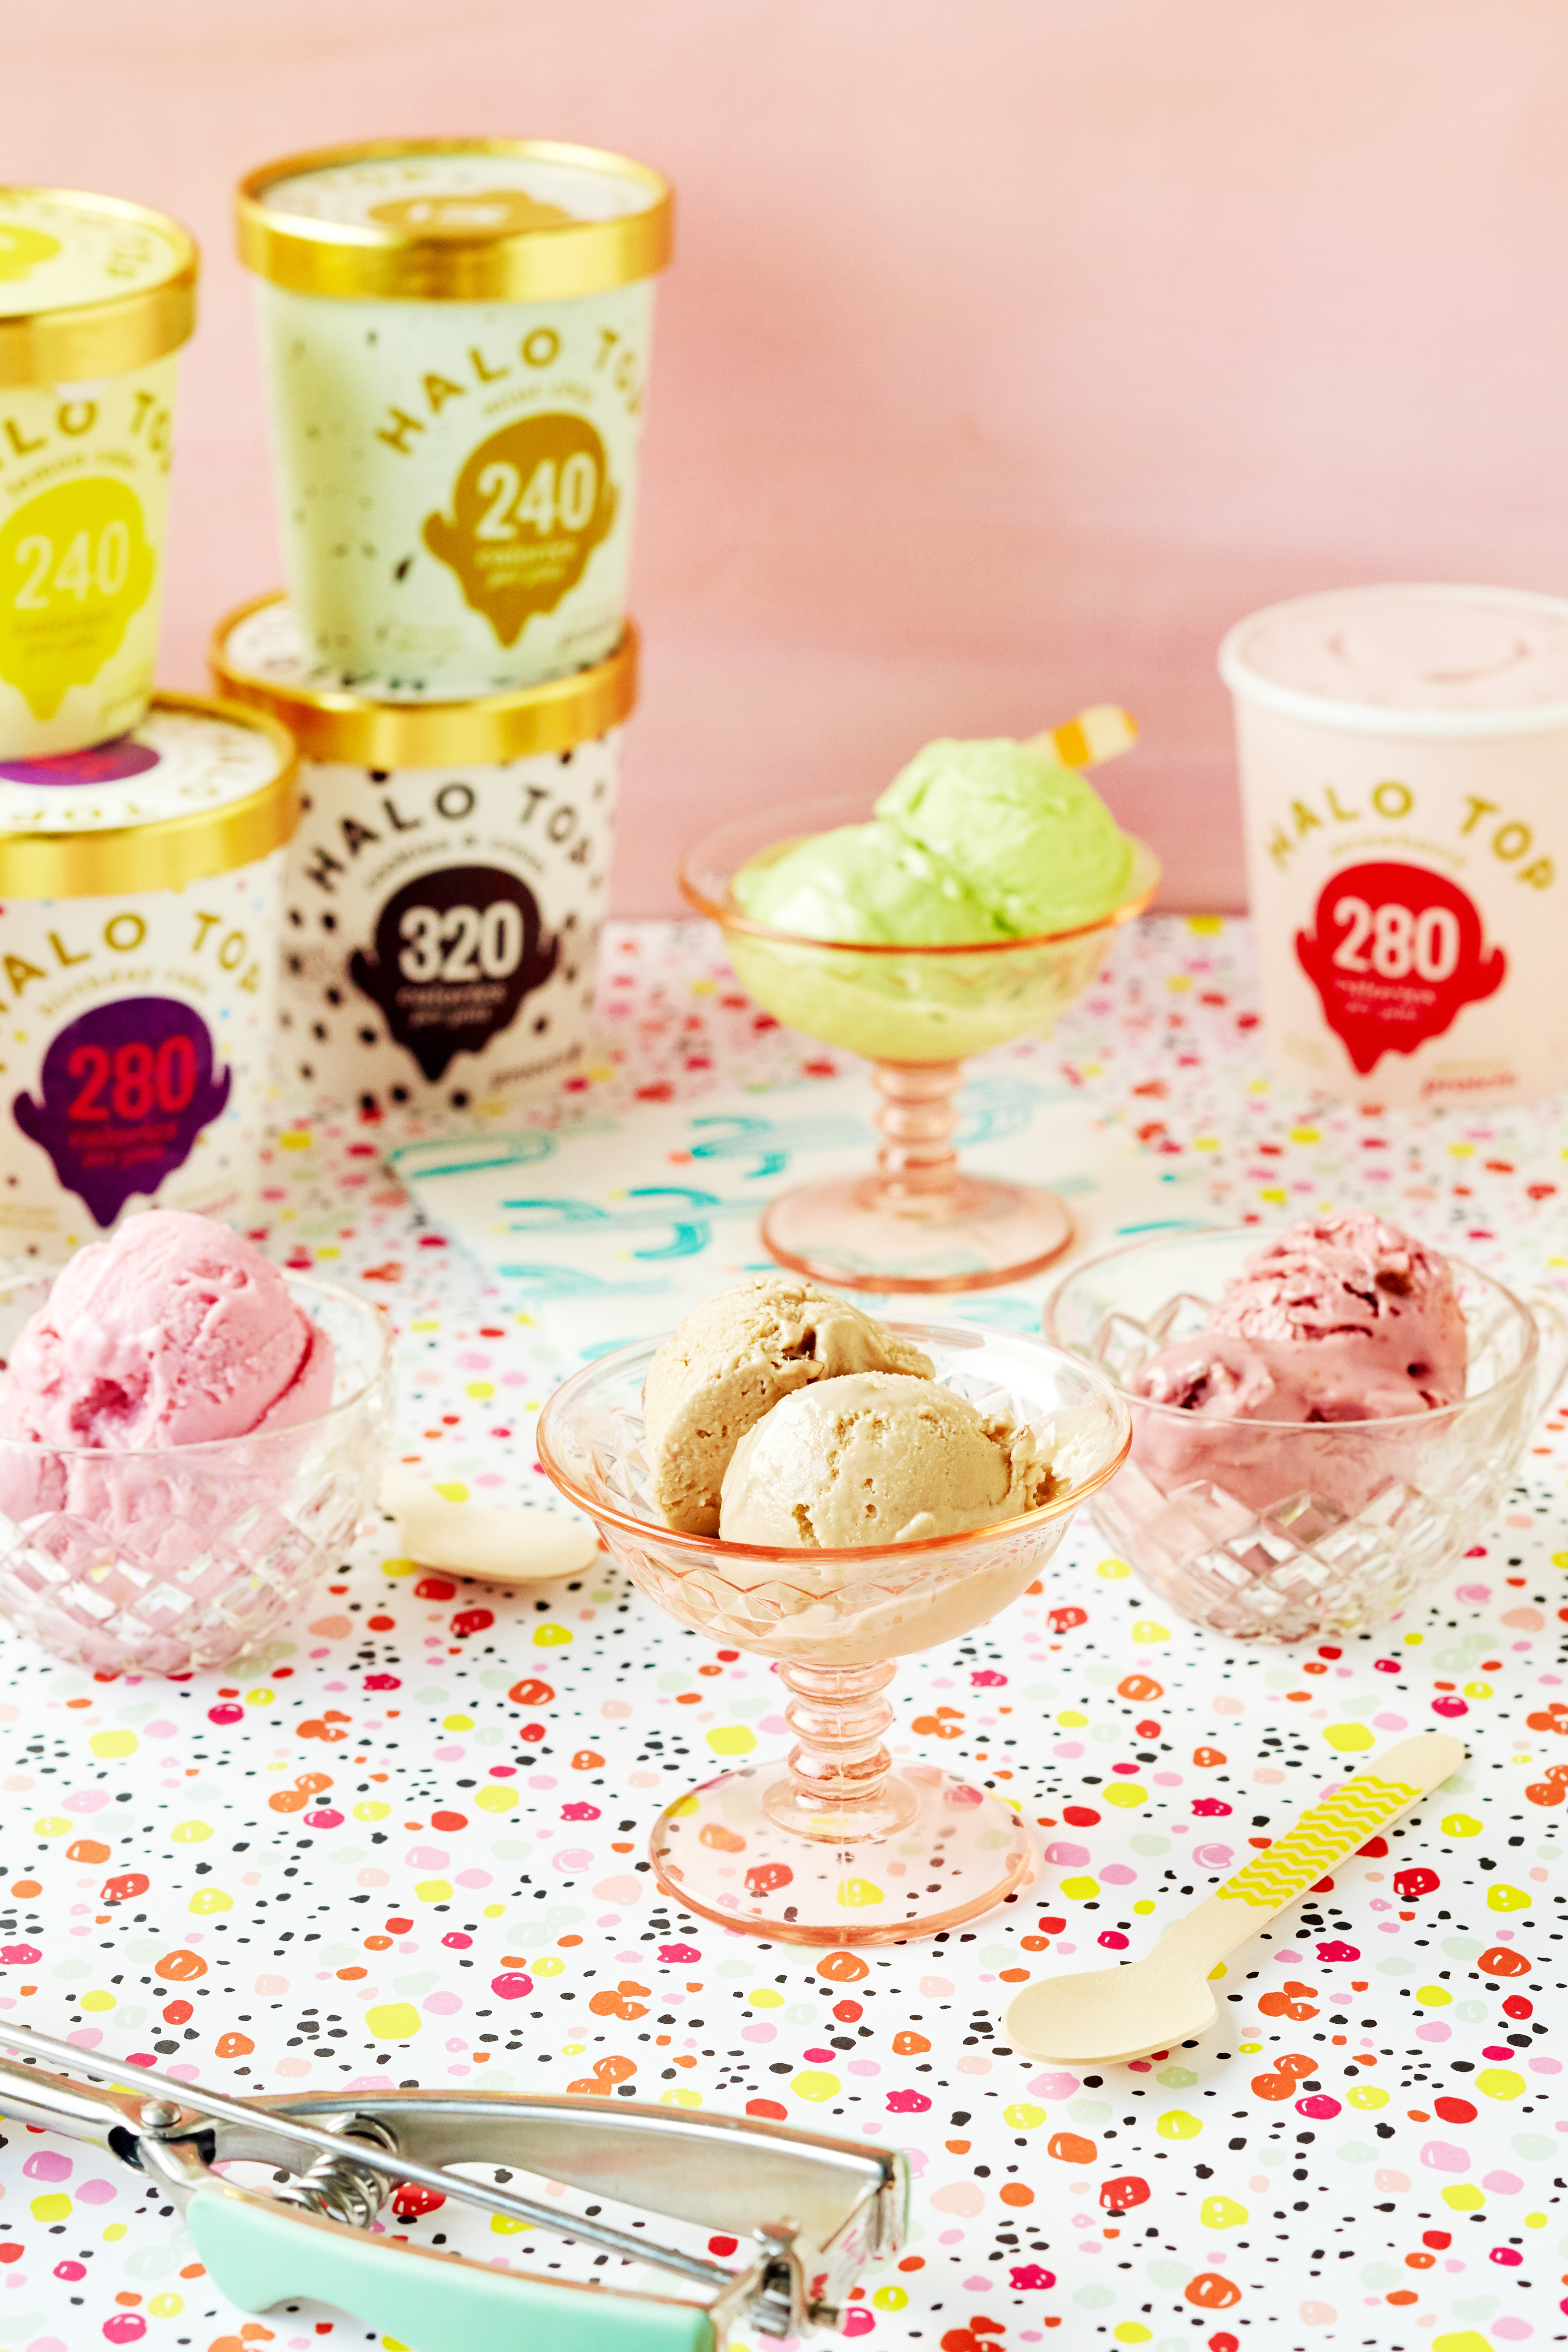 We Tried Every Halo Top Ice Cream Flavor And Heres Our Favorite